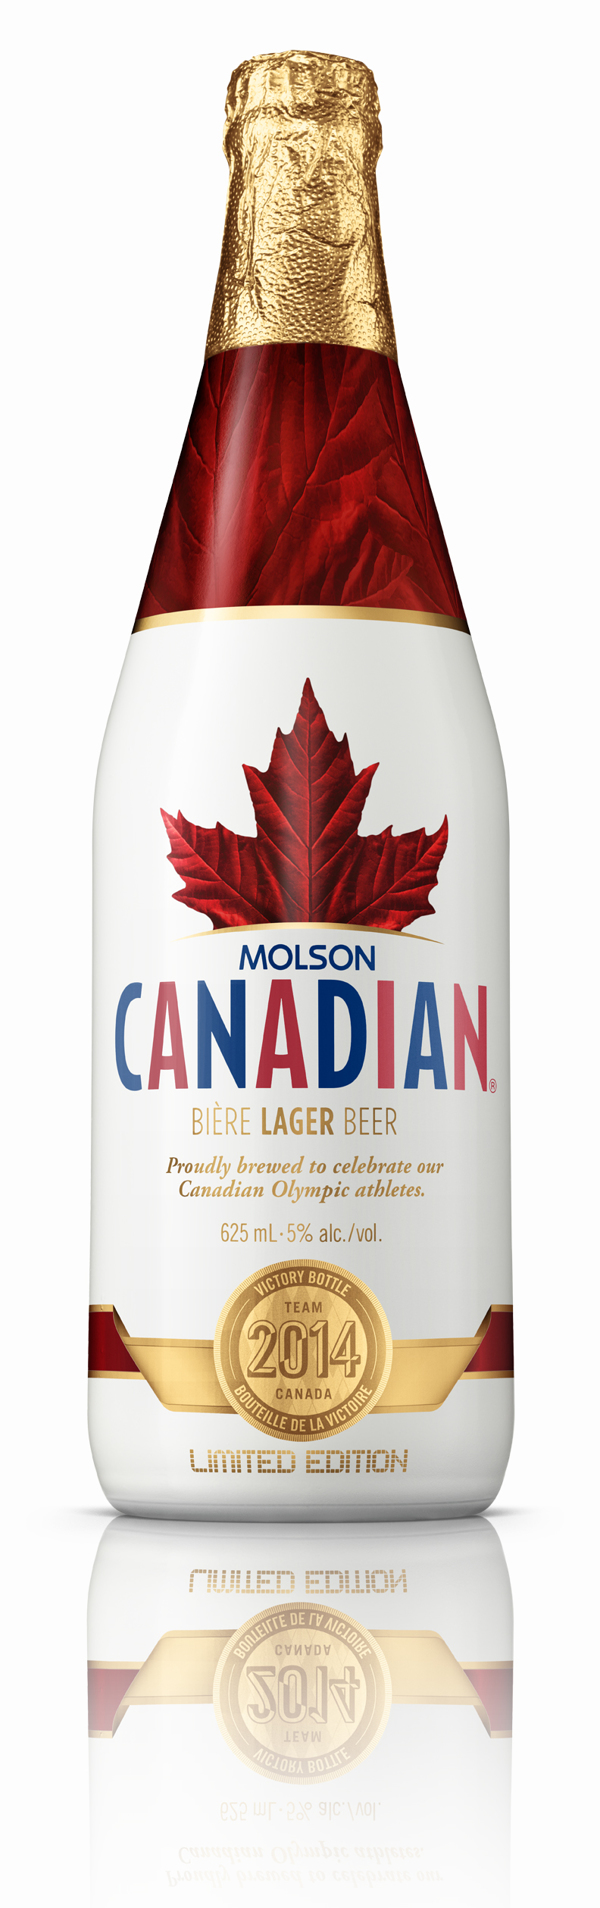 Molson Canadian Victory Bottle By The 3d Image Studio Via Behance Canadian Beer Wine And Spirits Bottle